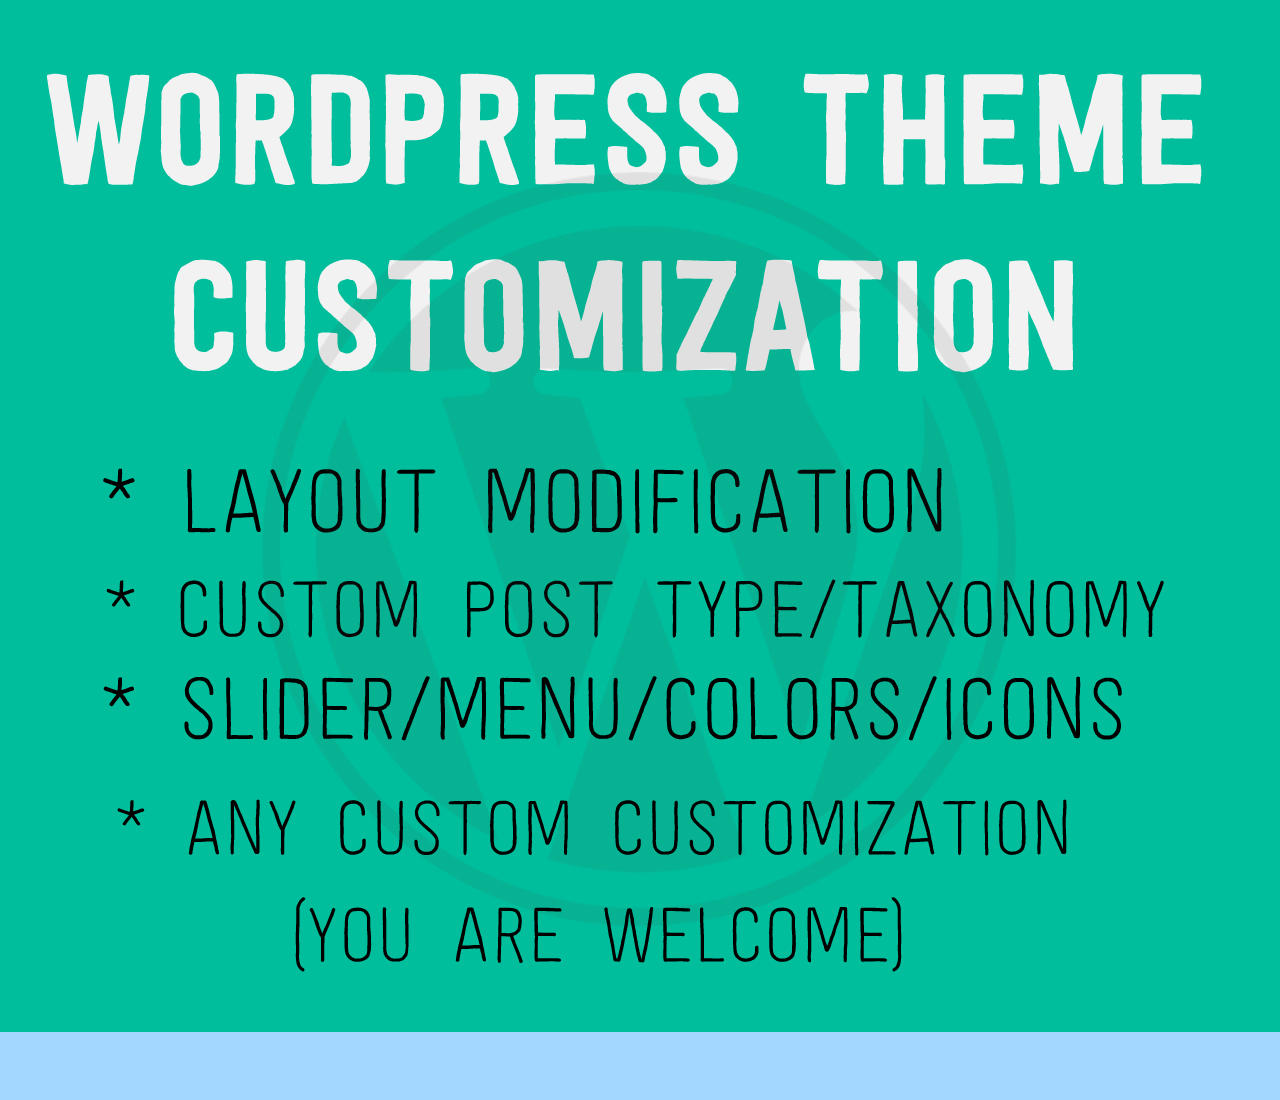 Professional WordPress Theme Customization by MuhammadHaroon - 73159